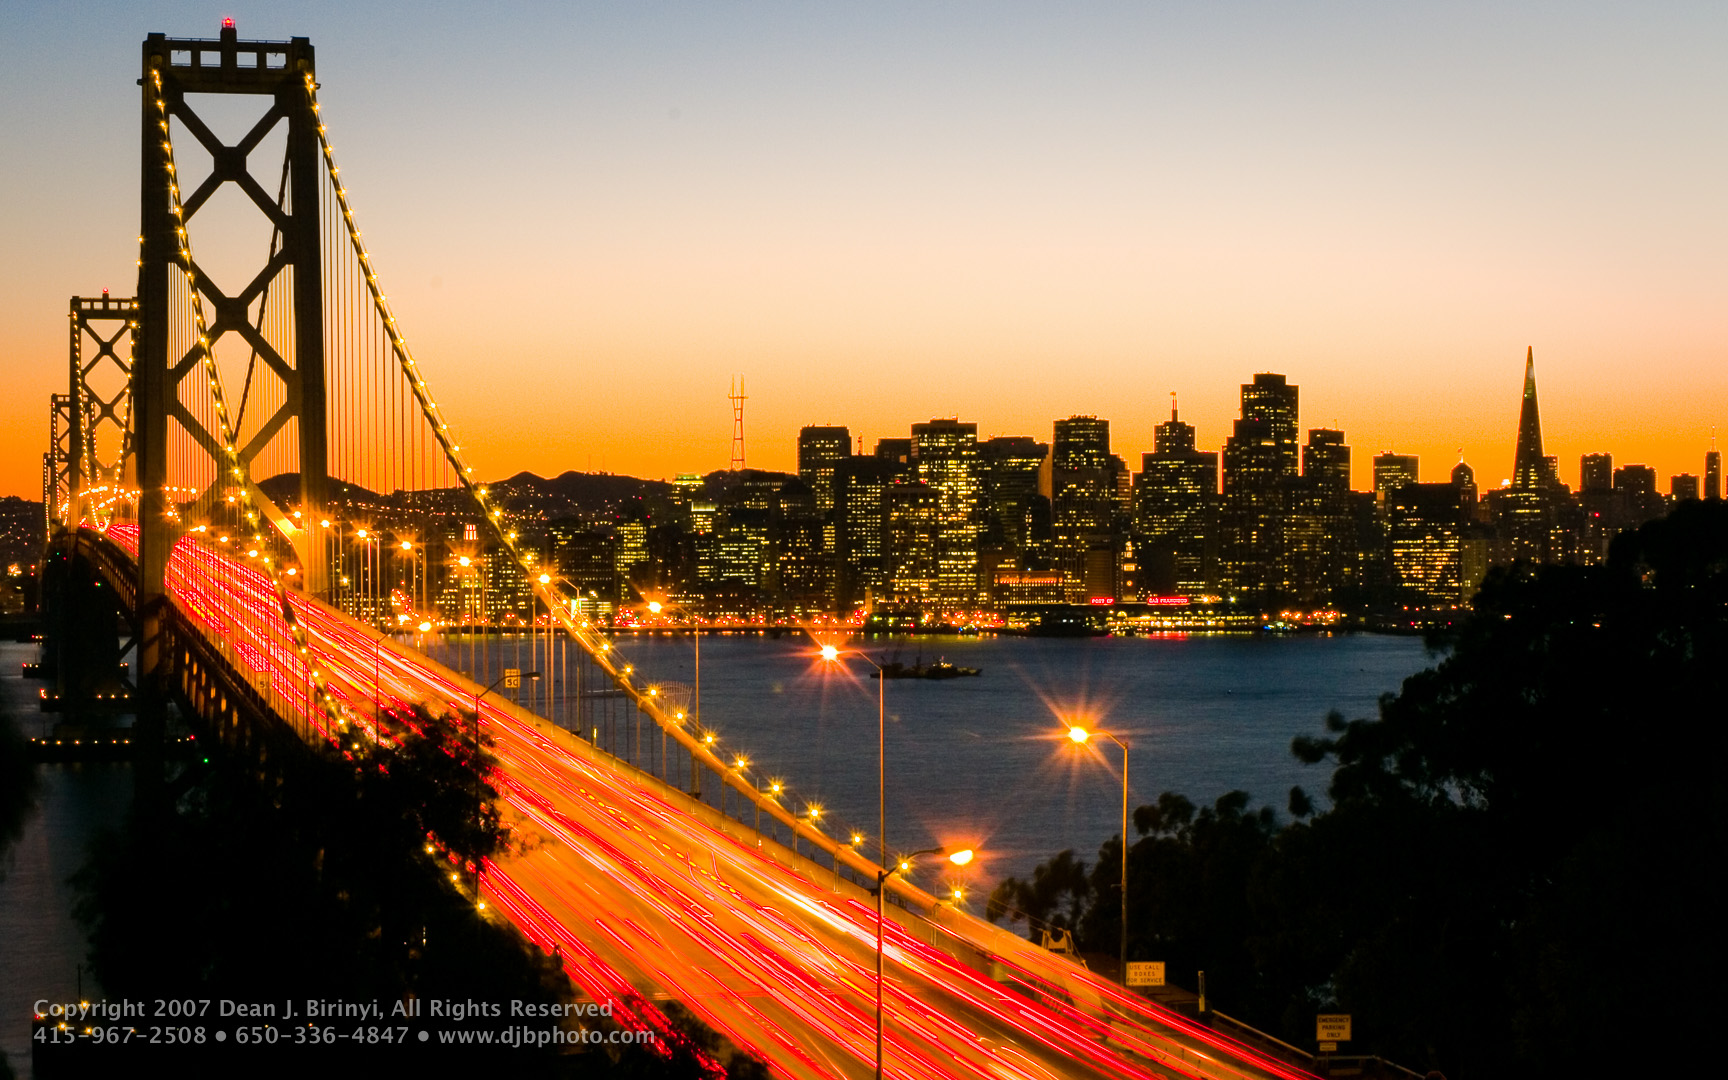 San Francisco Bay Bridge at sunset with illuminated cityscape in background